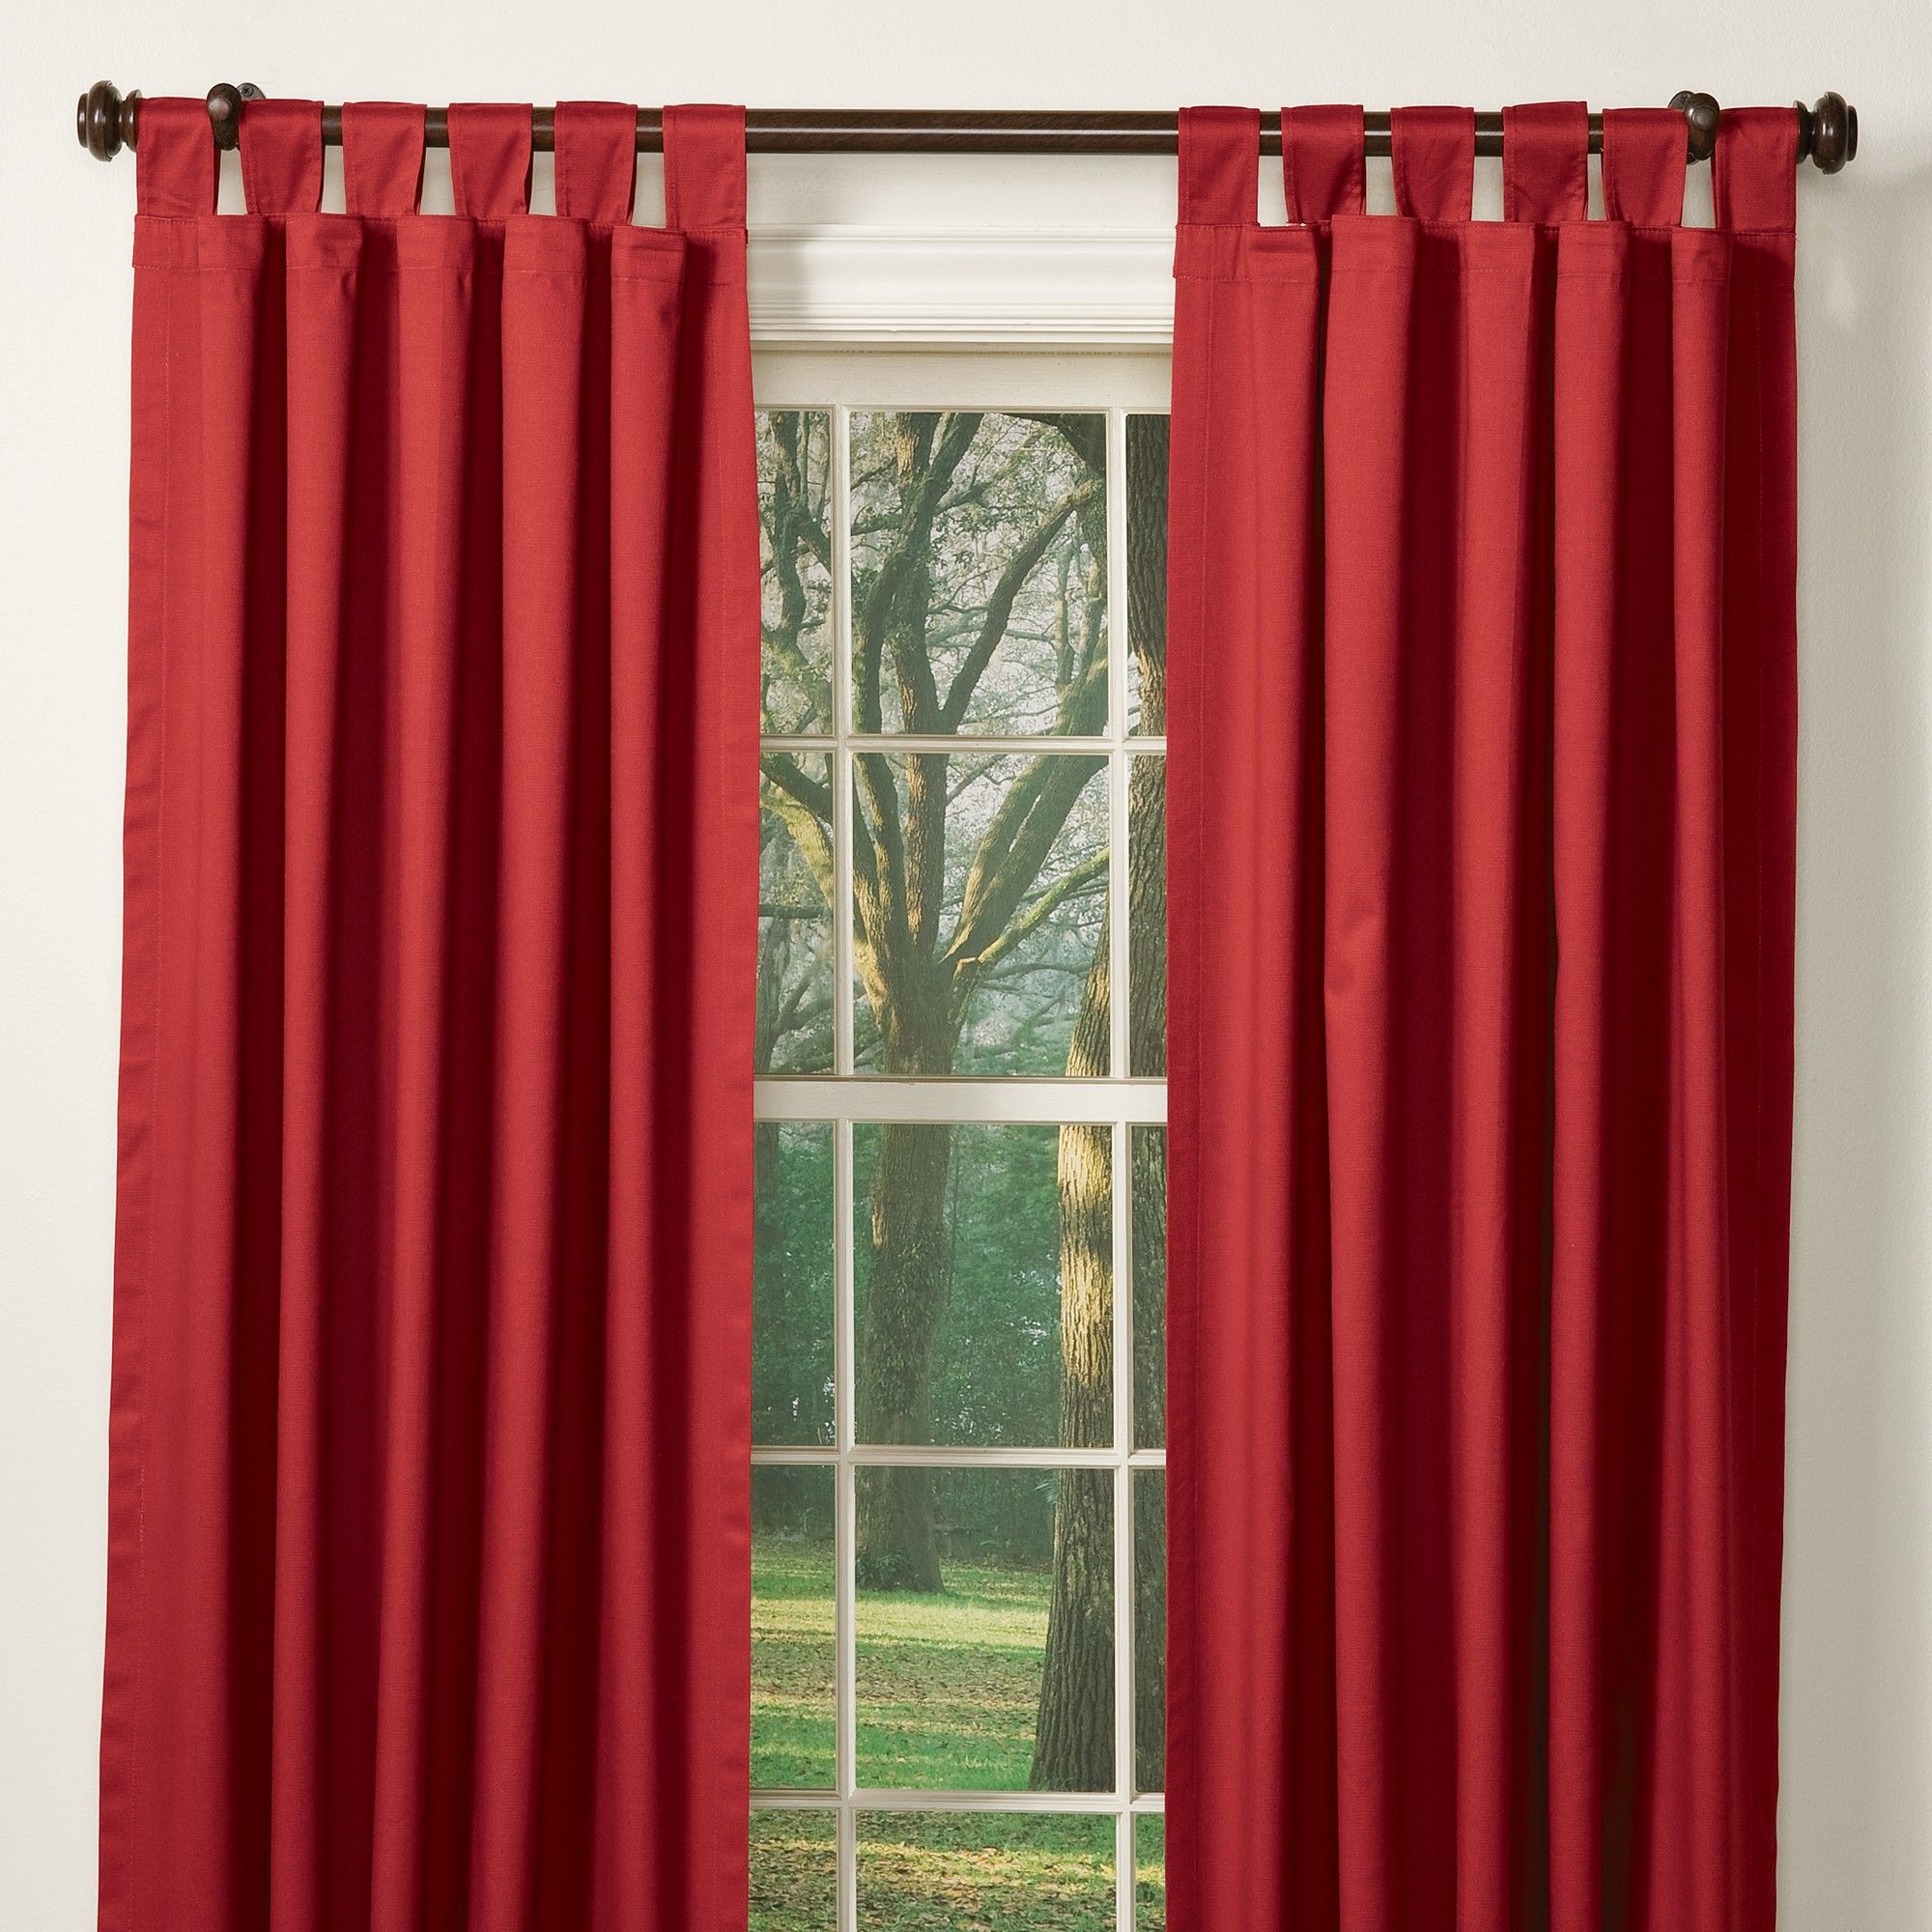 Red velvet window curtains - Room Design Green Silk Drapes Lavender Curtains Red Velvet Curtains Polka Dot Curtains Roman Curtains